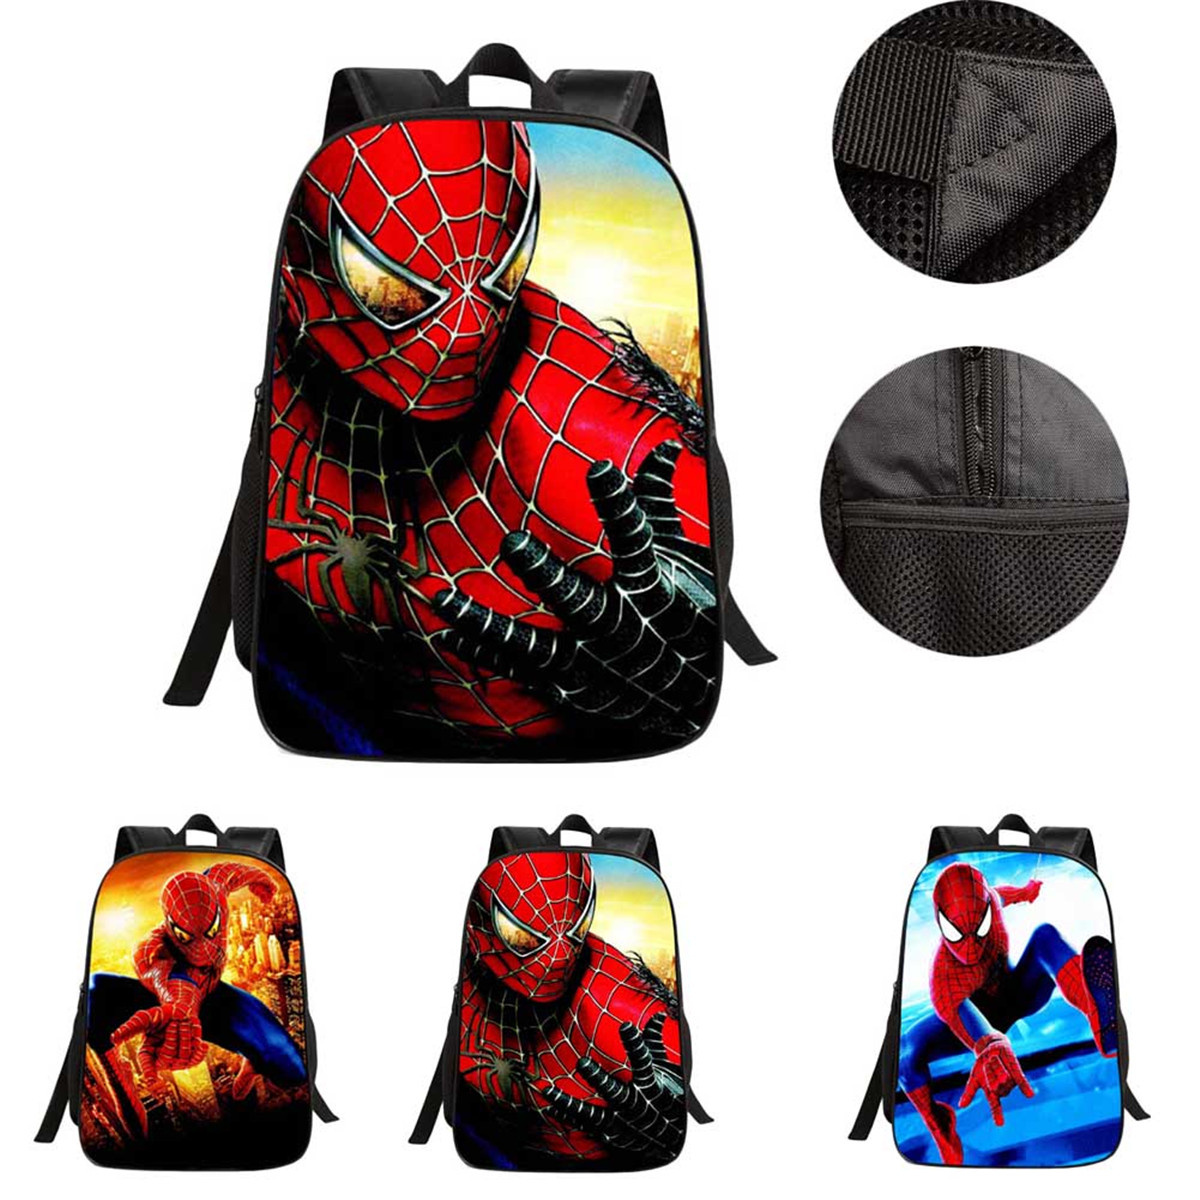 Spider-Man School Backpack 11220155